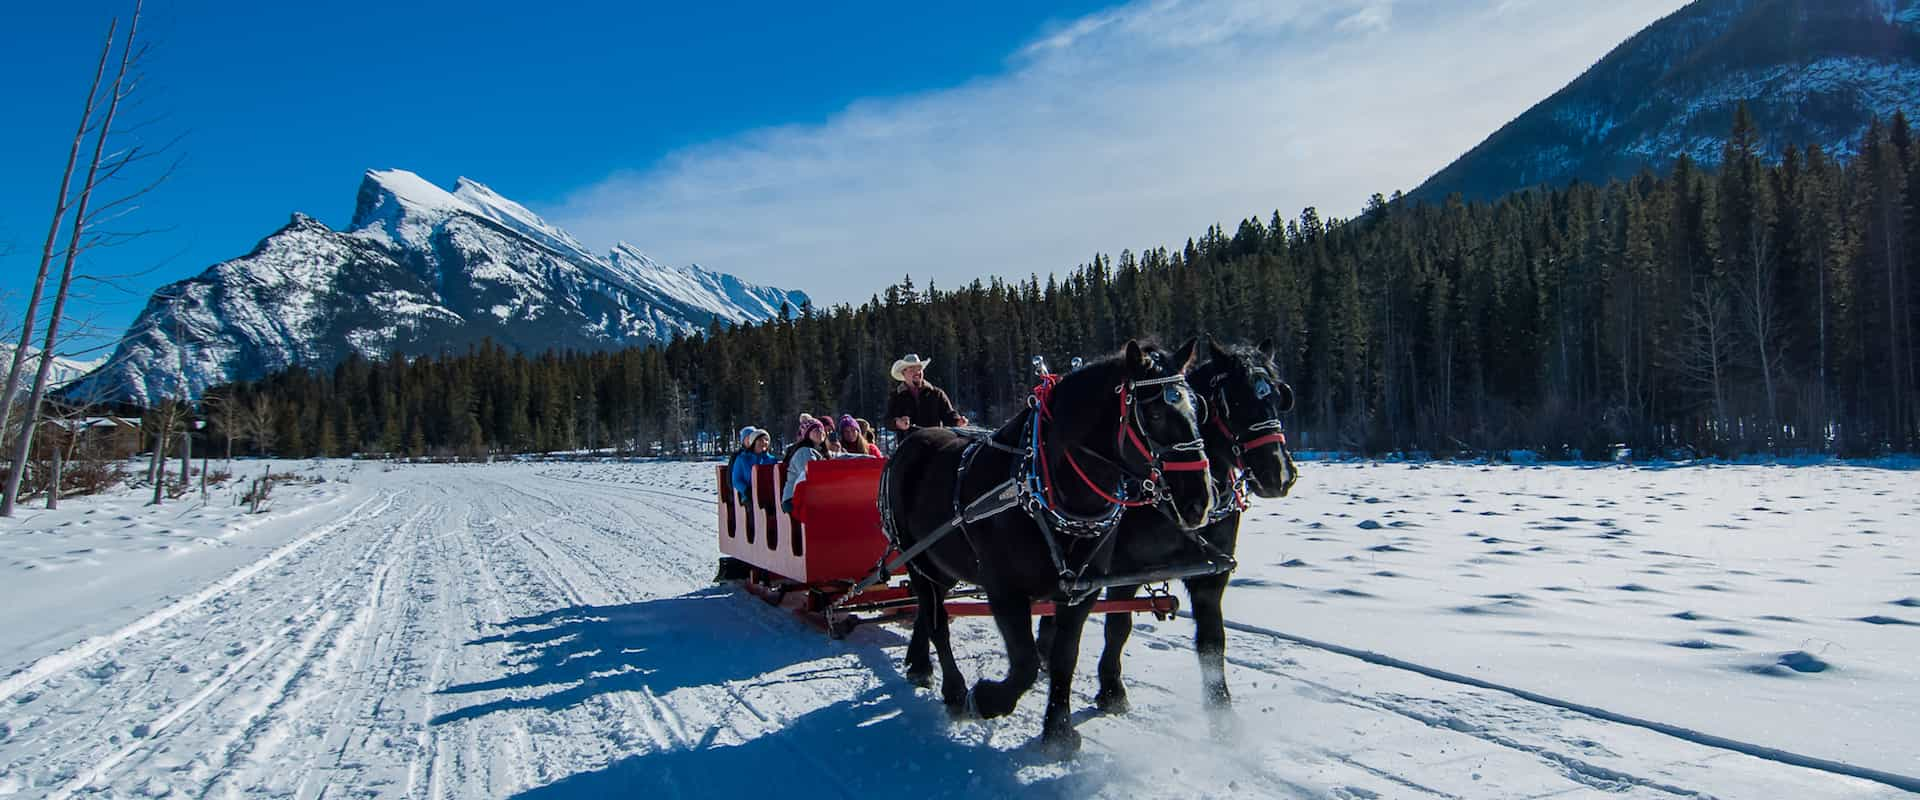 See Mount Rundle and other mountains on a Banff sleigh ride